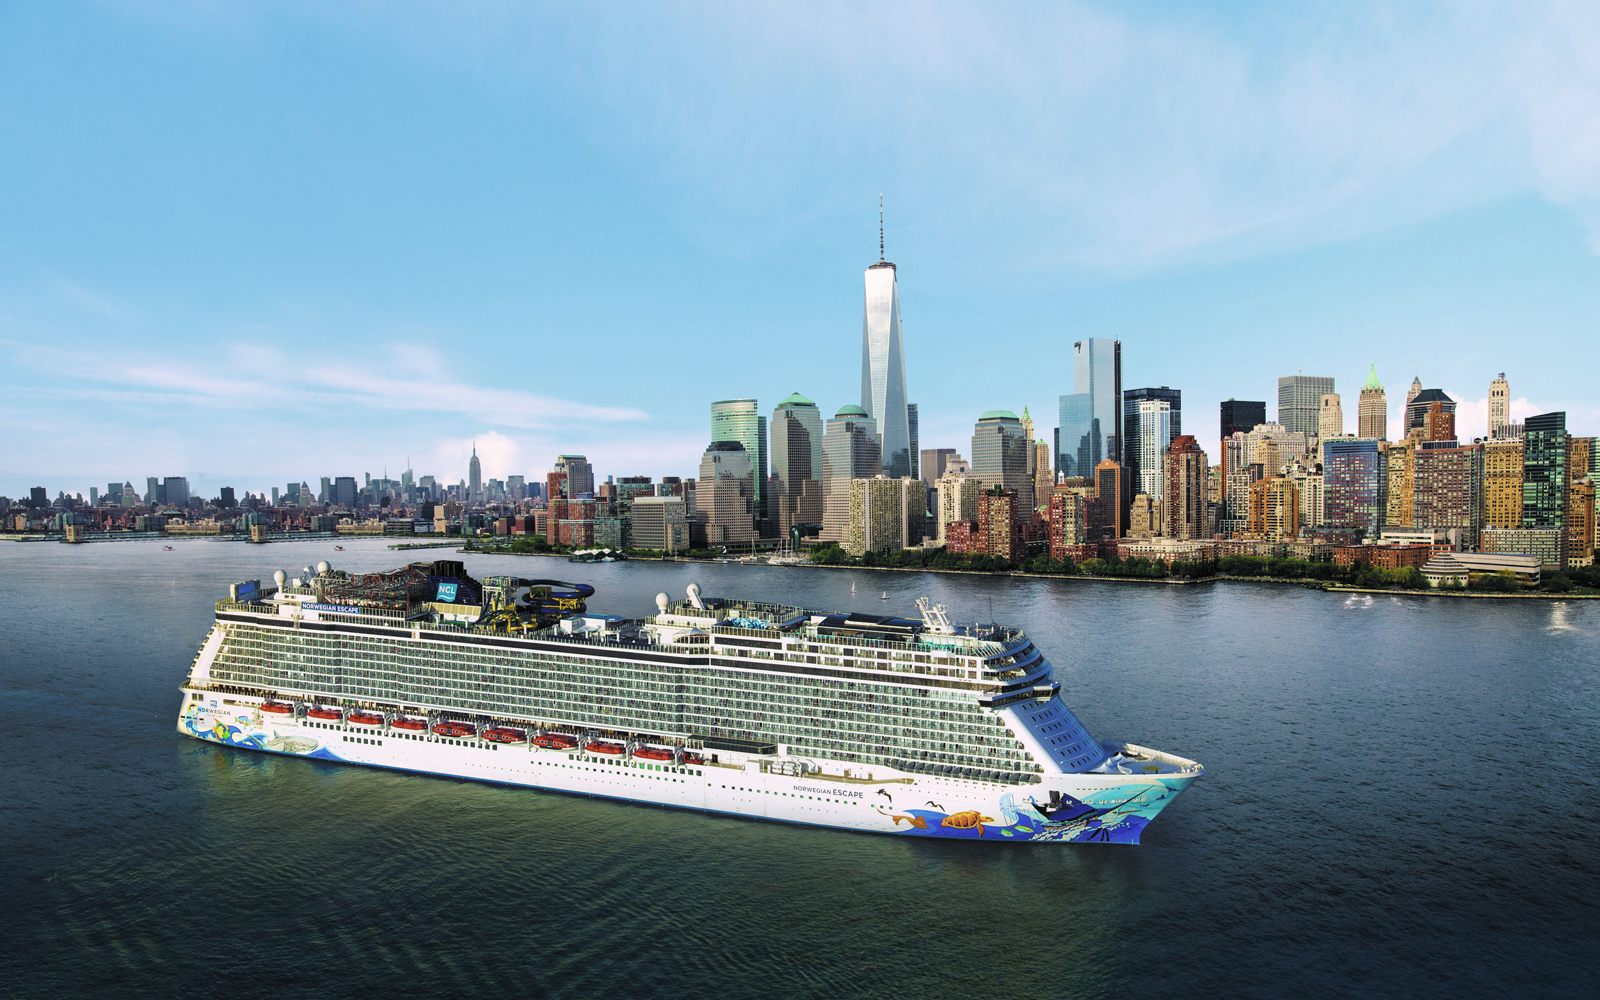 The Best Cruises From NYC to Bermuda, Disney, Iceland, Miami, Rome, and More